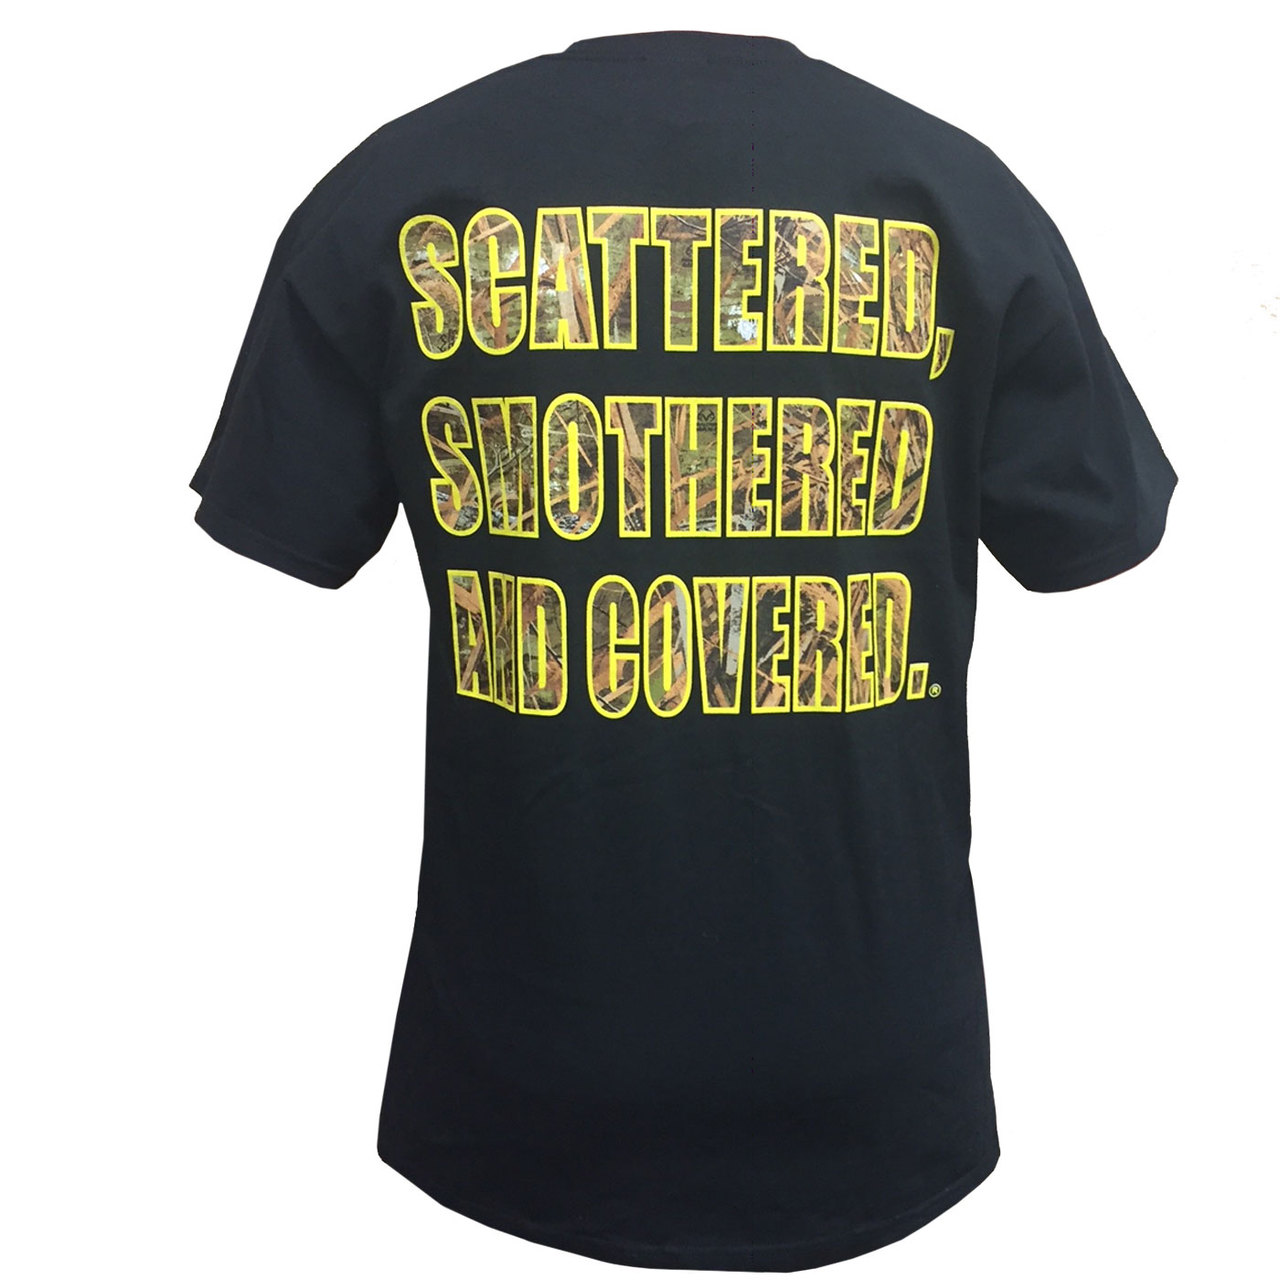 Back in black t shirt - Realtree Camo Waffle House Apparel Waffle House Max 5 Scattered Smothered And Covered T Shirt In Black